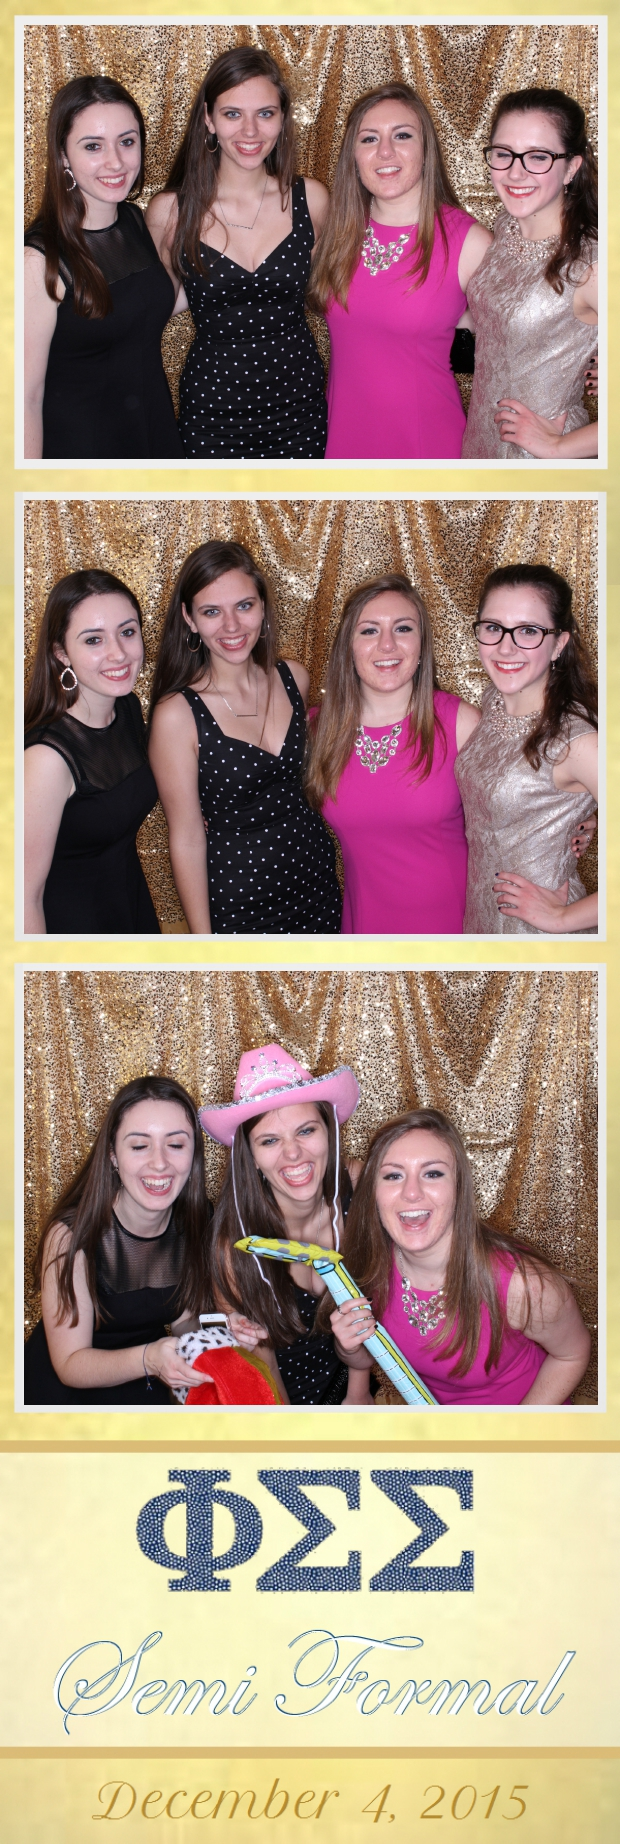 Guest House Events Photo Booth Phi Sigma Sigma Semi Formal (28).jpg